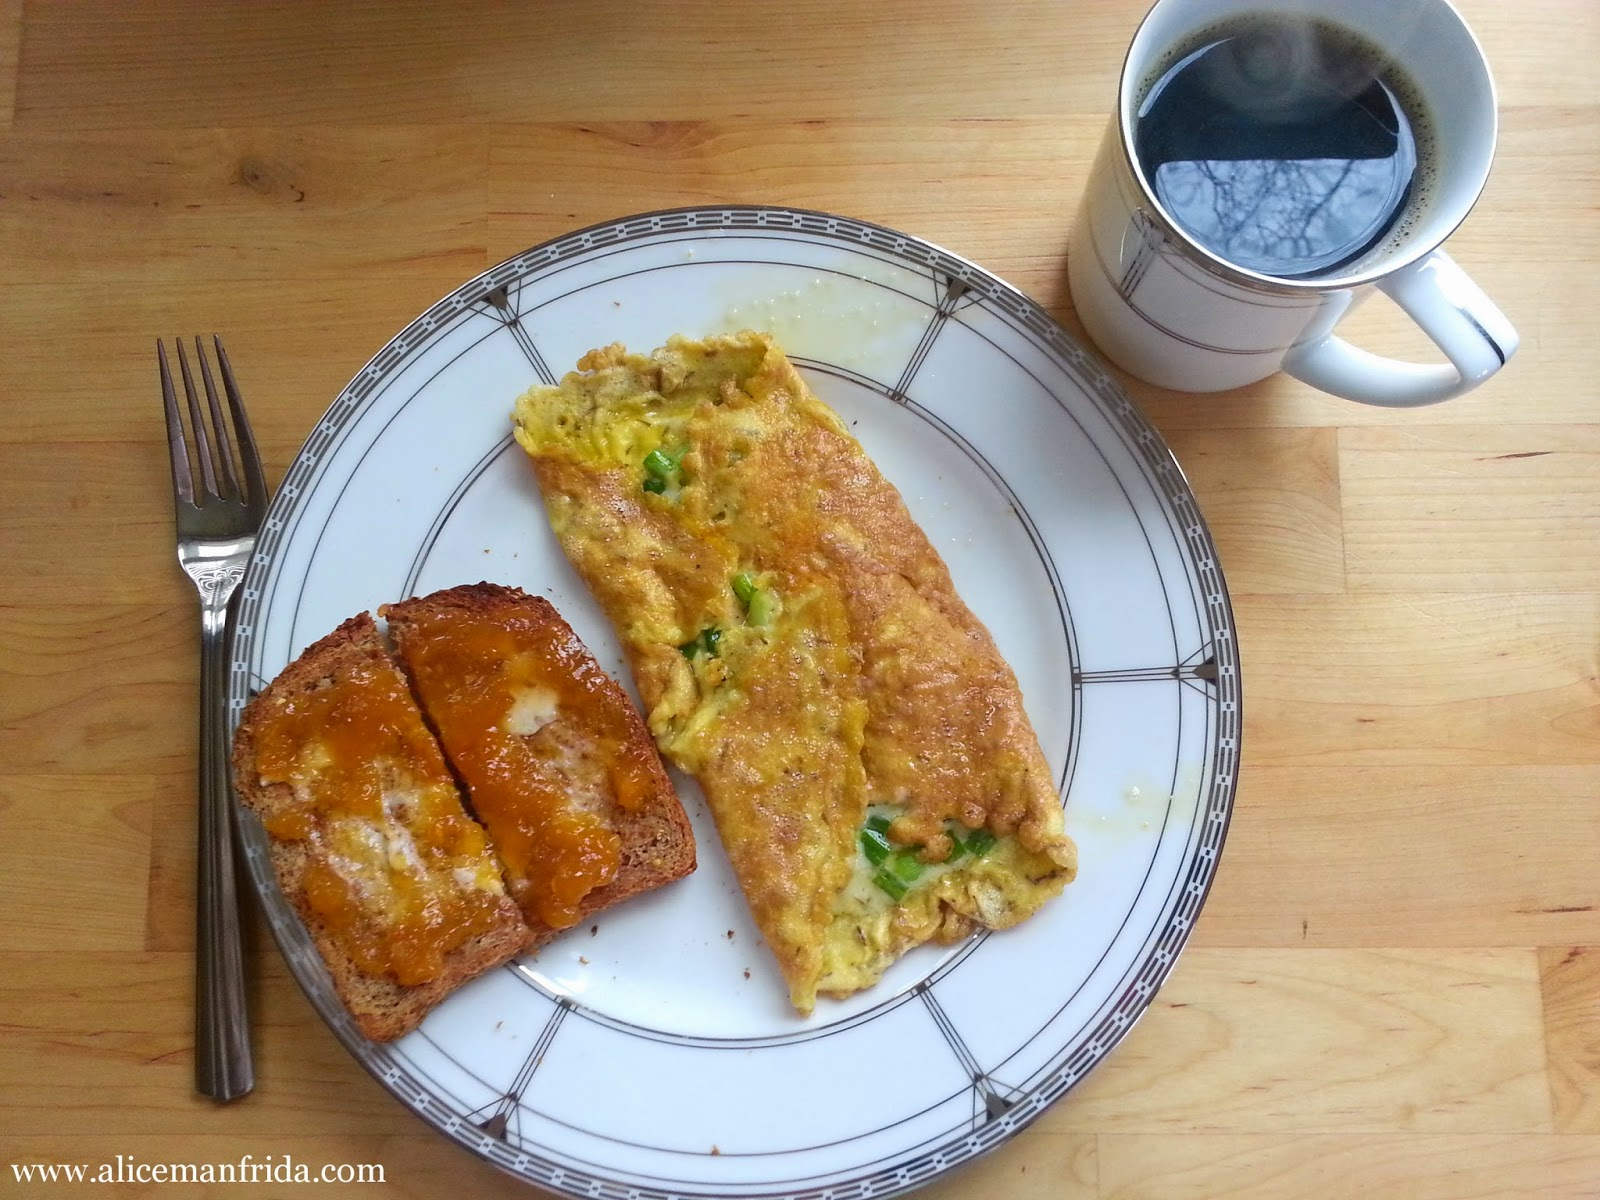 omelet, toast, coffee